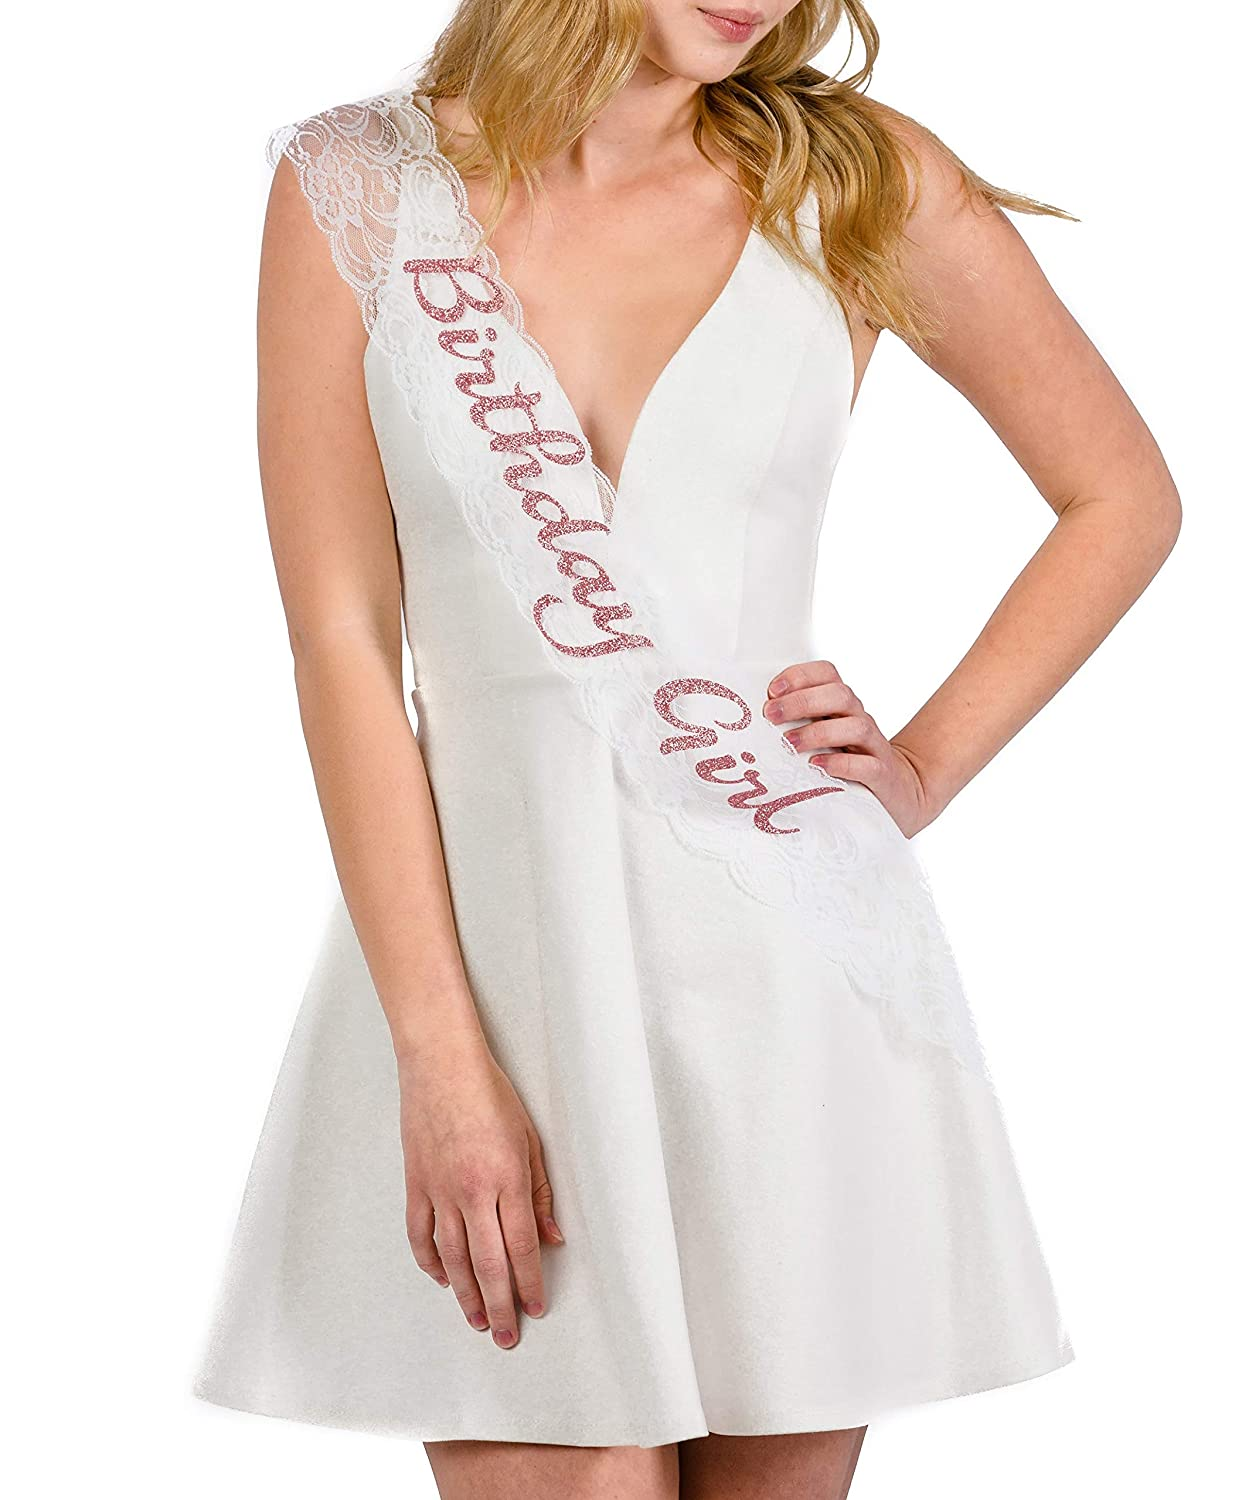 Dulcet Downtown White Birthday Girl Lace Sash in Rose Glitter Lettering